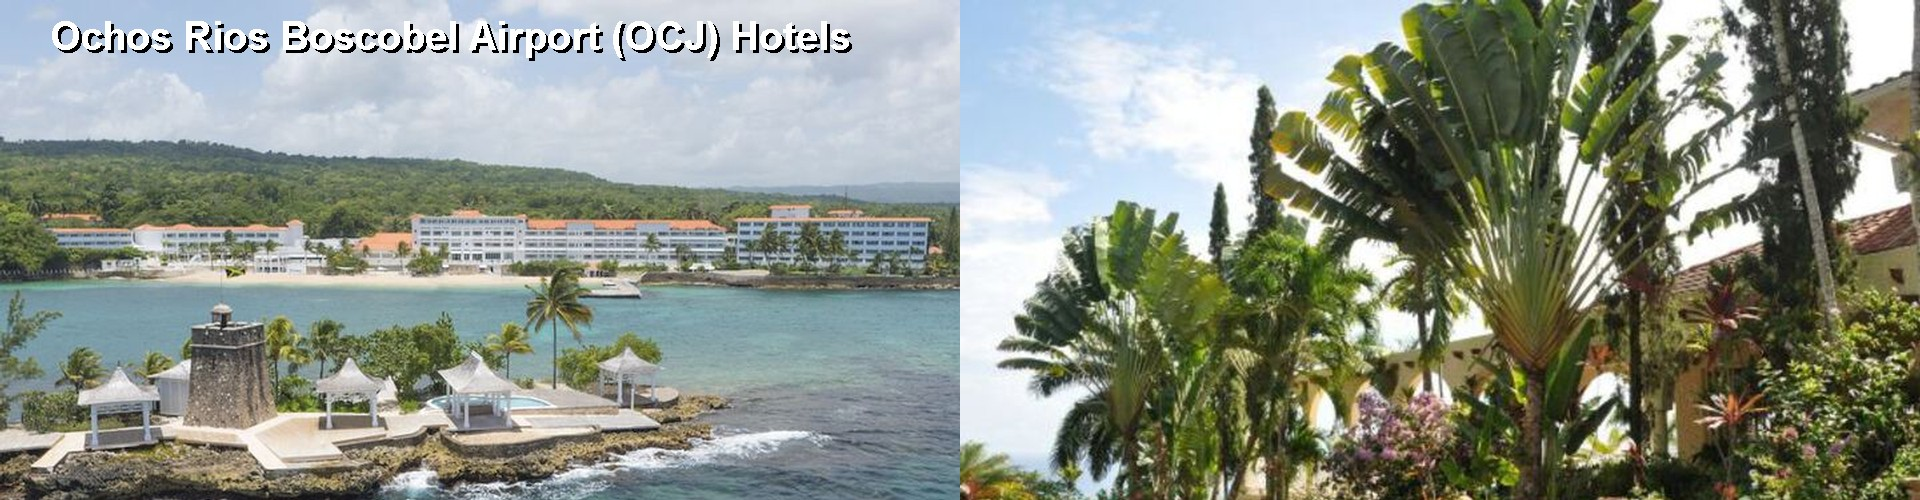 5 Best Hotels near Ochos Rios Boscobel Airport (OCJ)